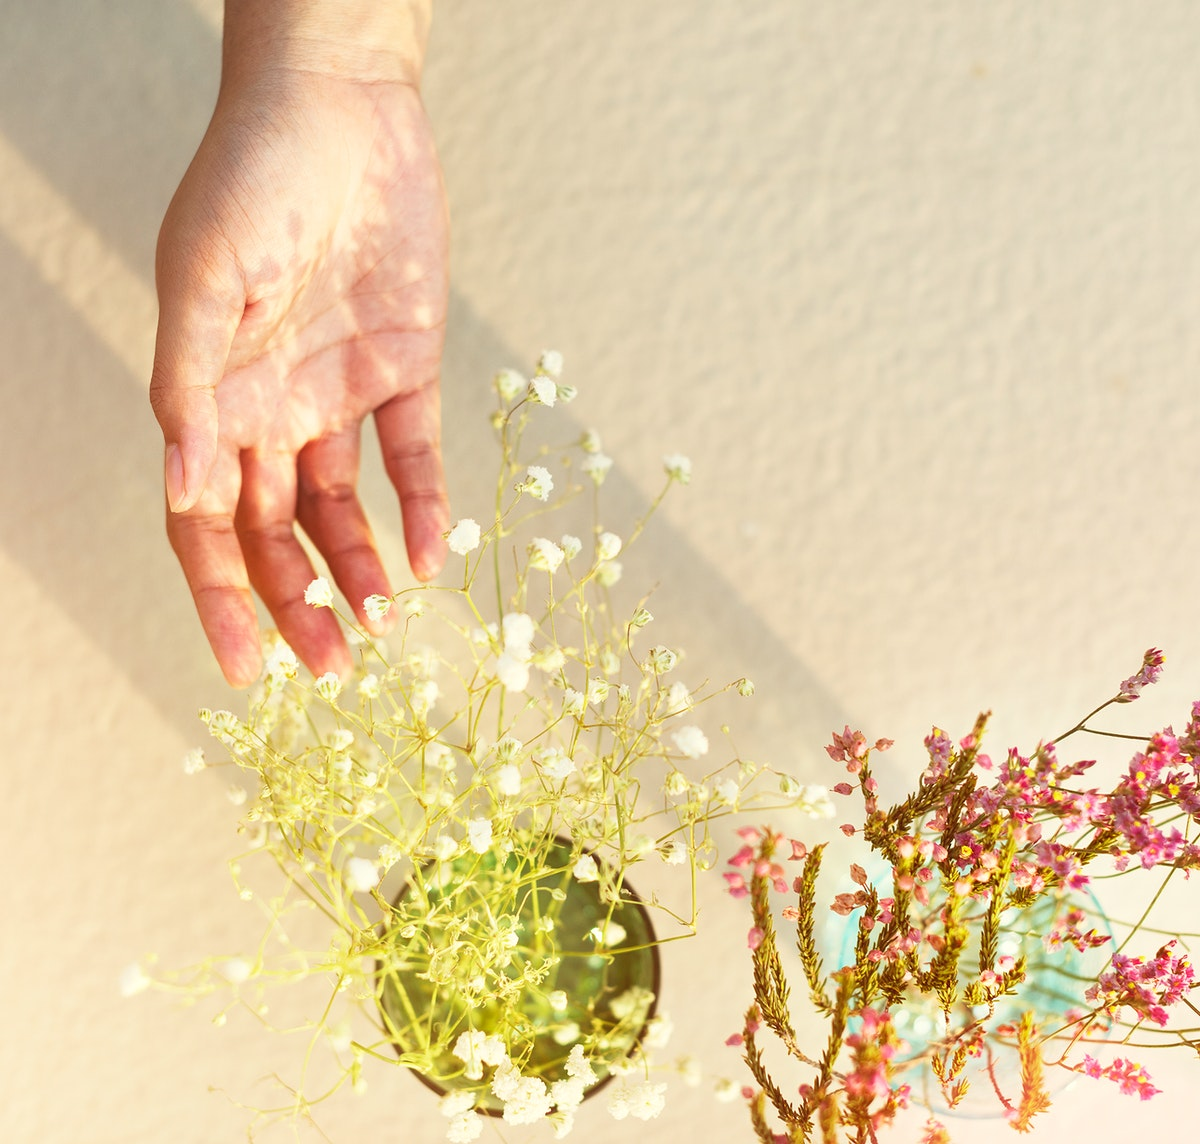 Aerial view of hand touching waxflower